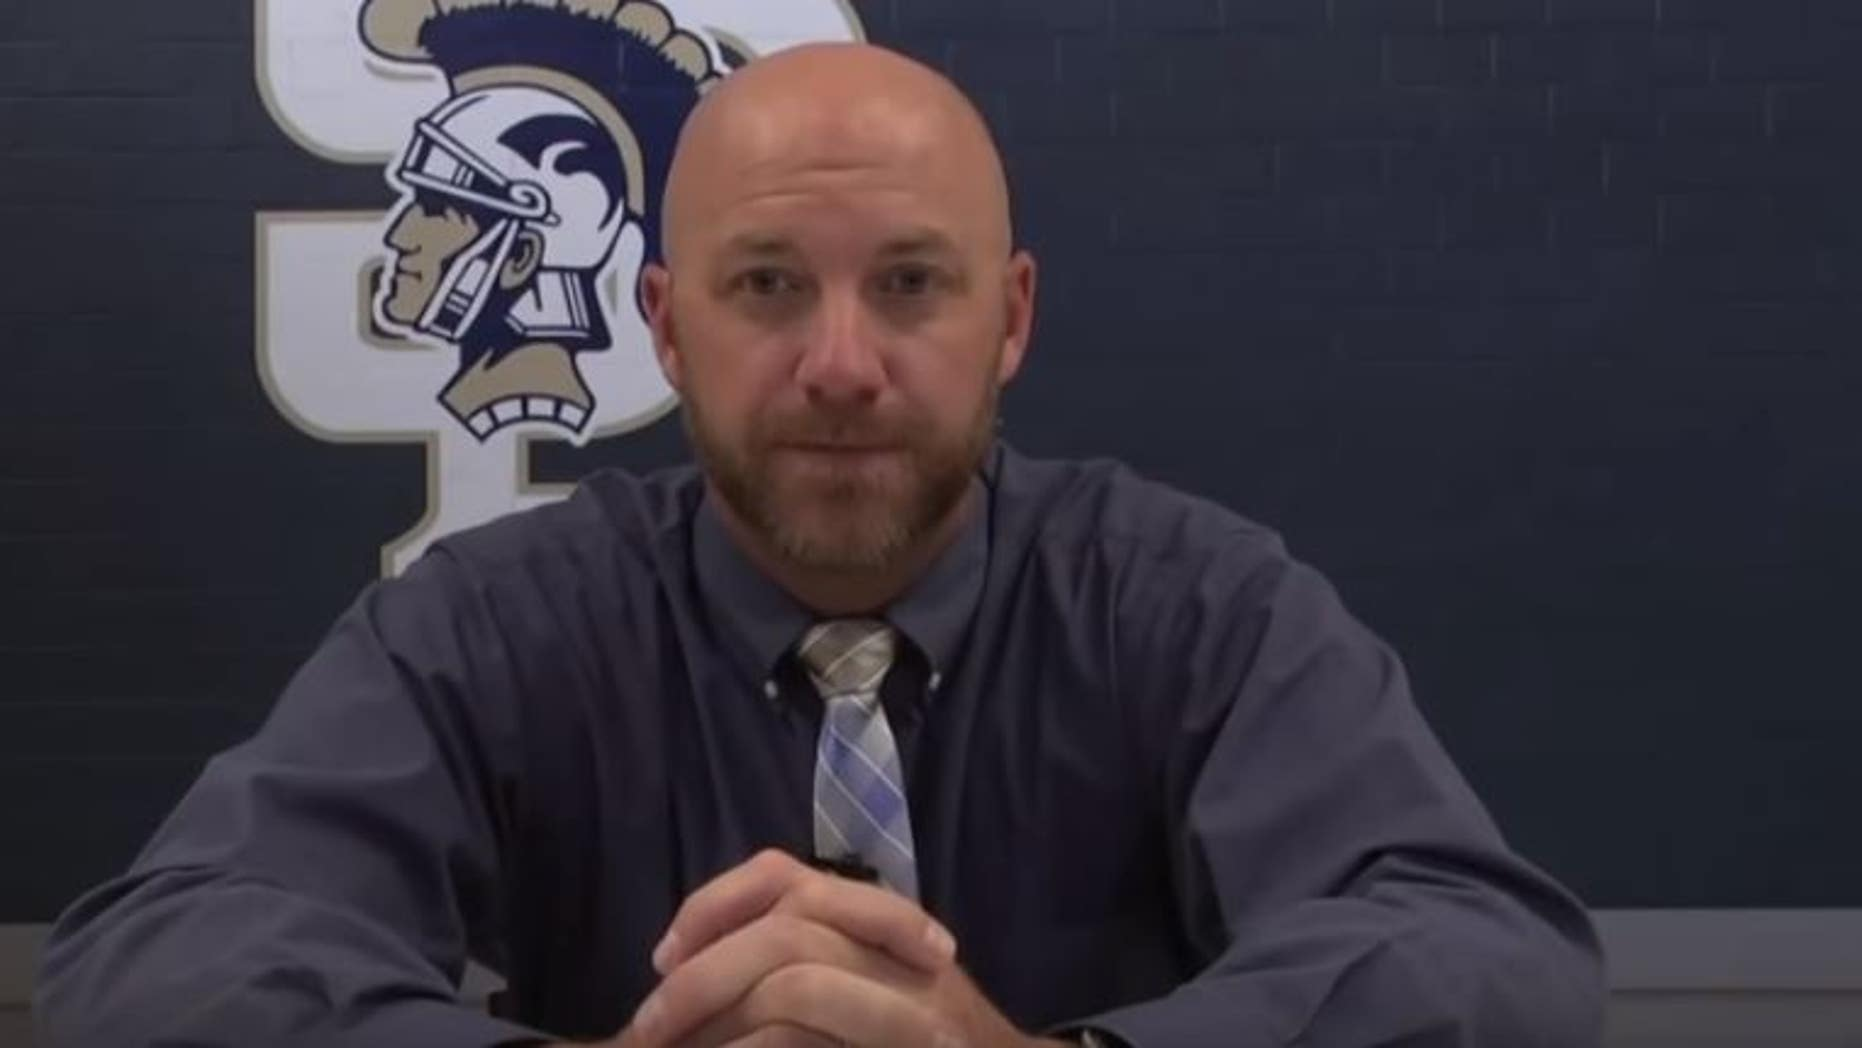 """Jared Hensley, a high school athletic director in Tennessee, was placed on leave Wednesday after saying girls """"pretty much ruin everything"""" in a video addressed to students."""